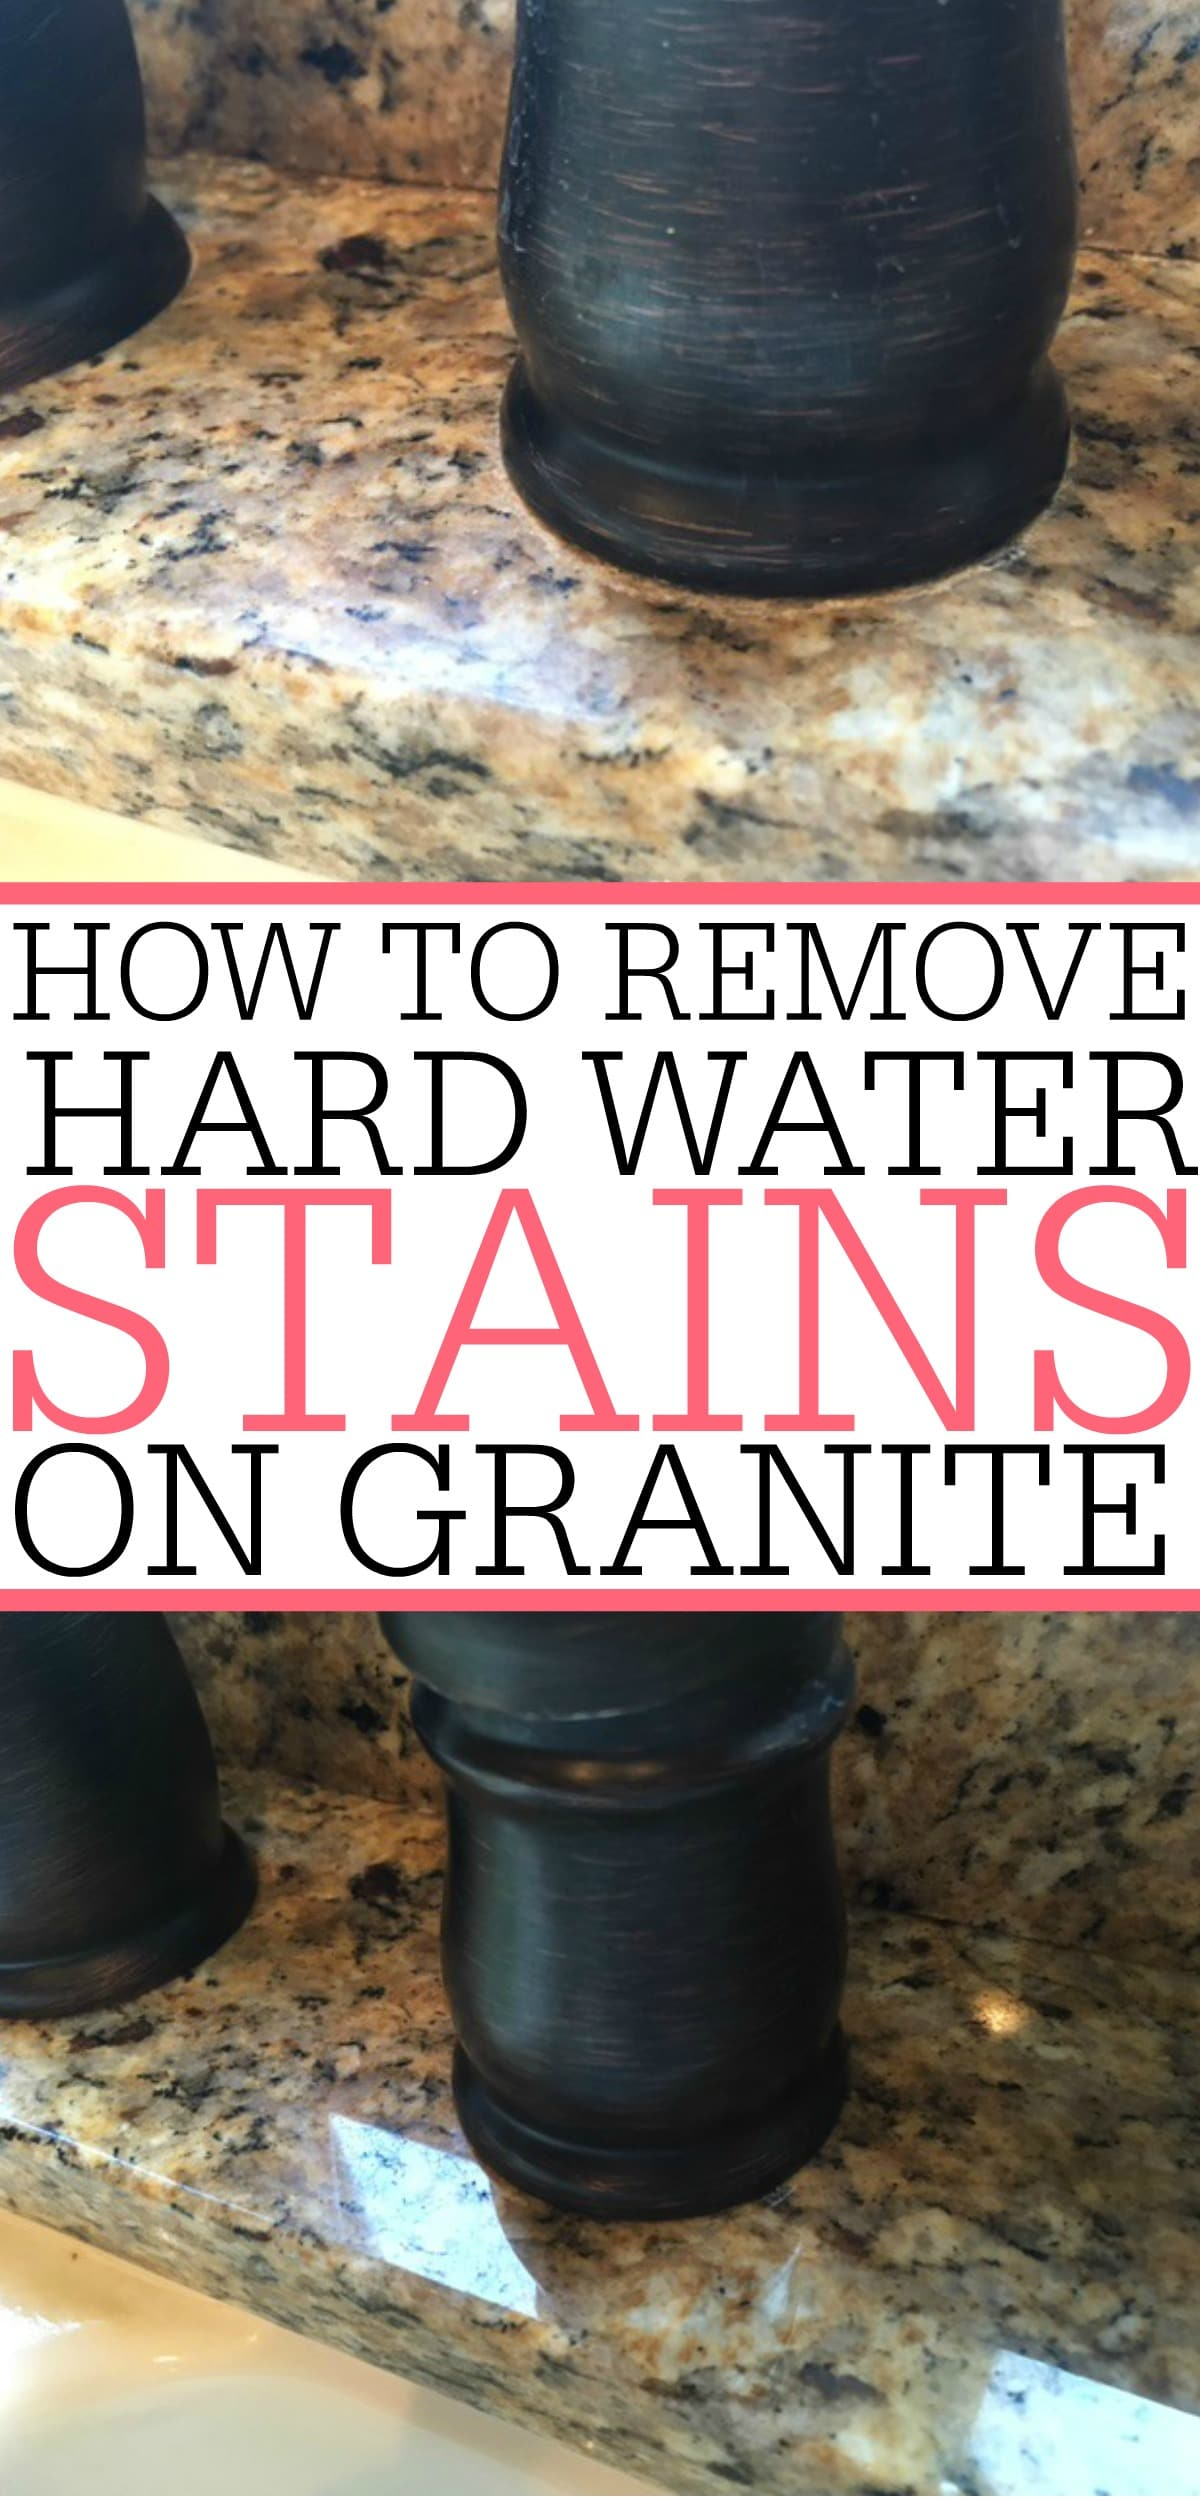 Dealing with a water stain on granite? No problem! It's easy removing water stains from granite with this simple tip! Water stains will be gone in no time.